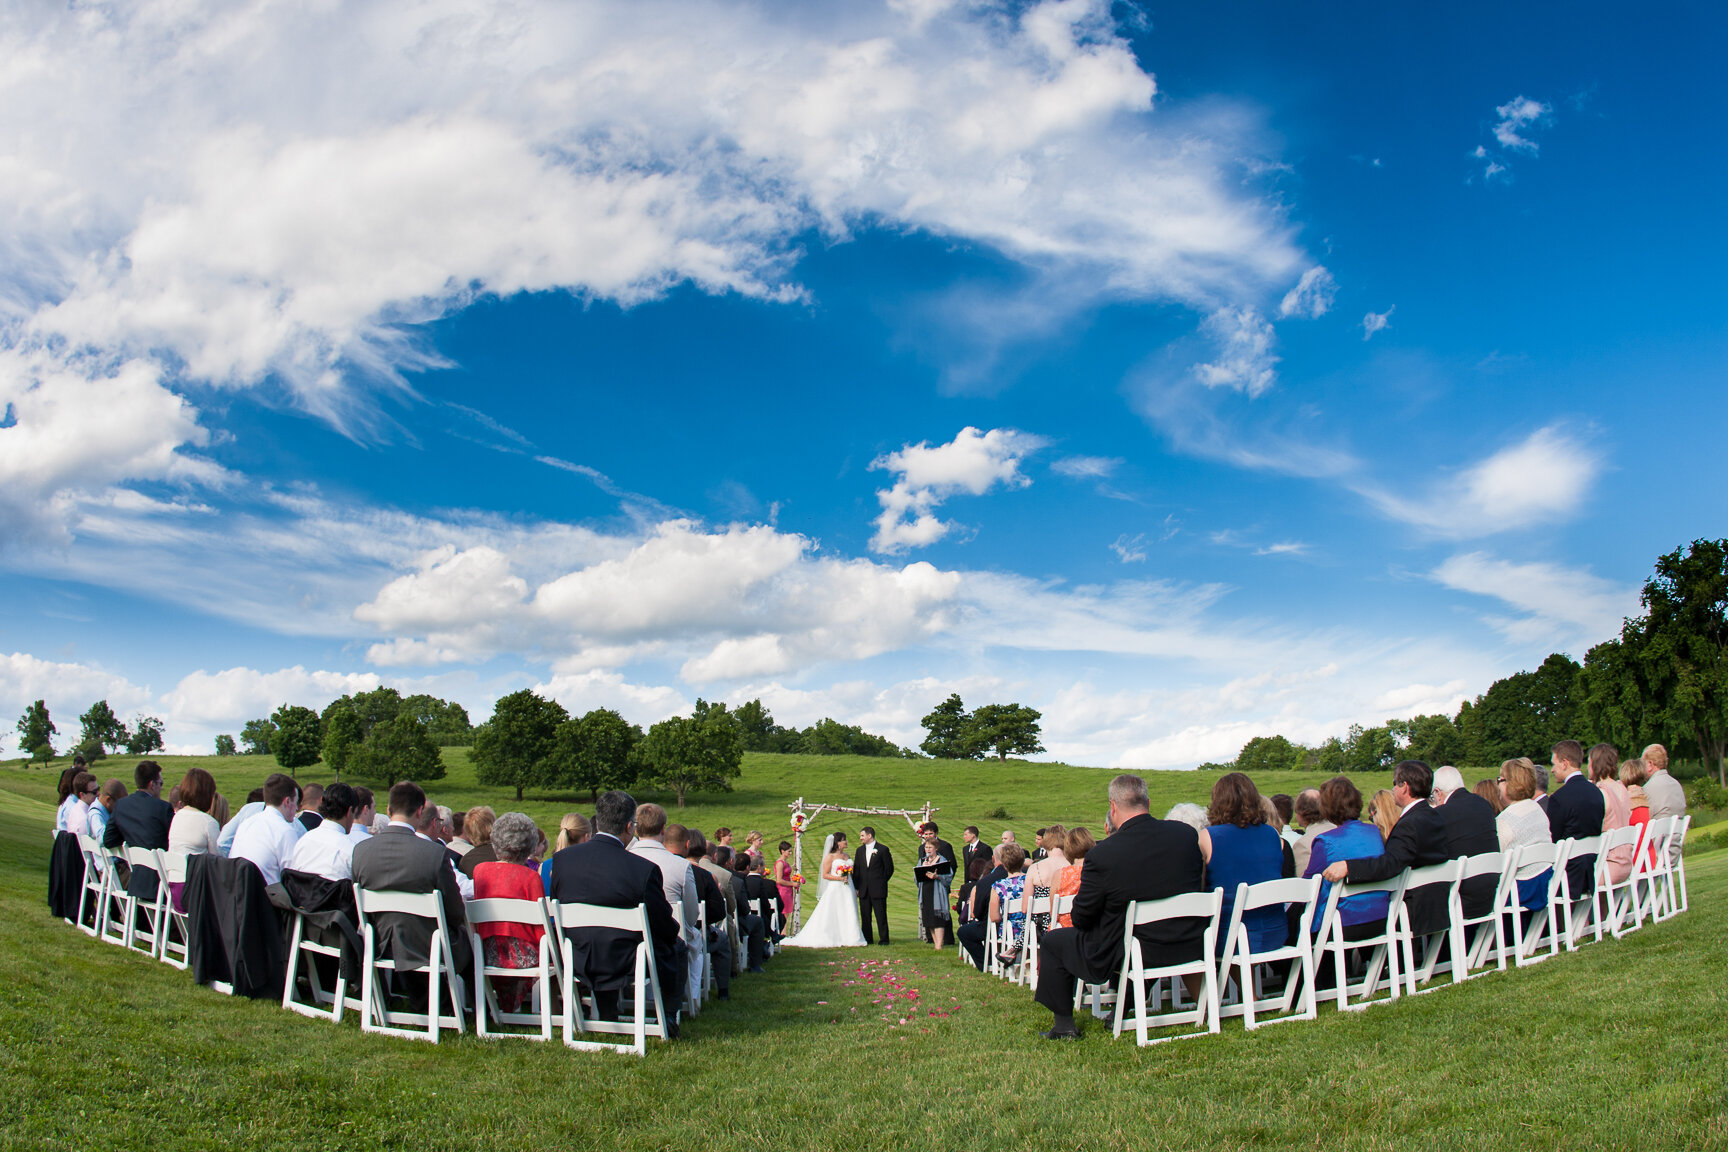 austin_wedding_photography.jpg